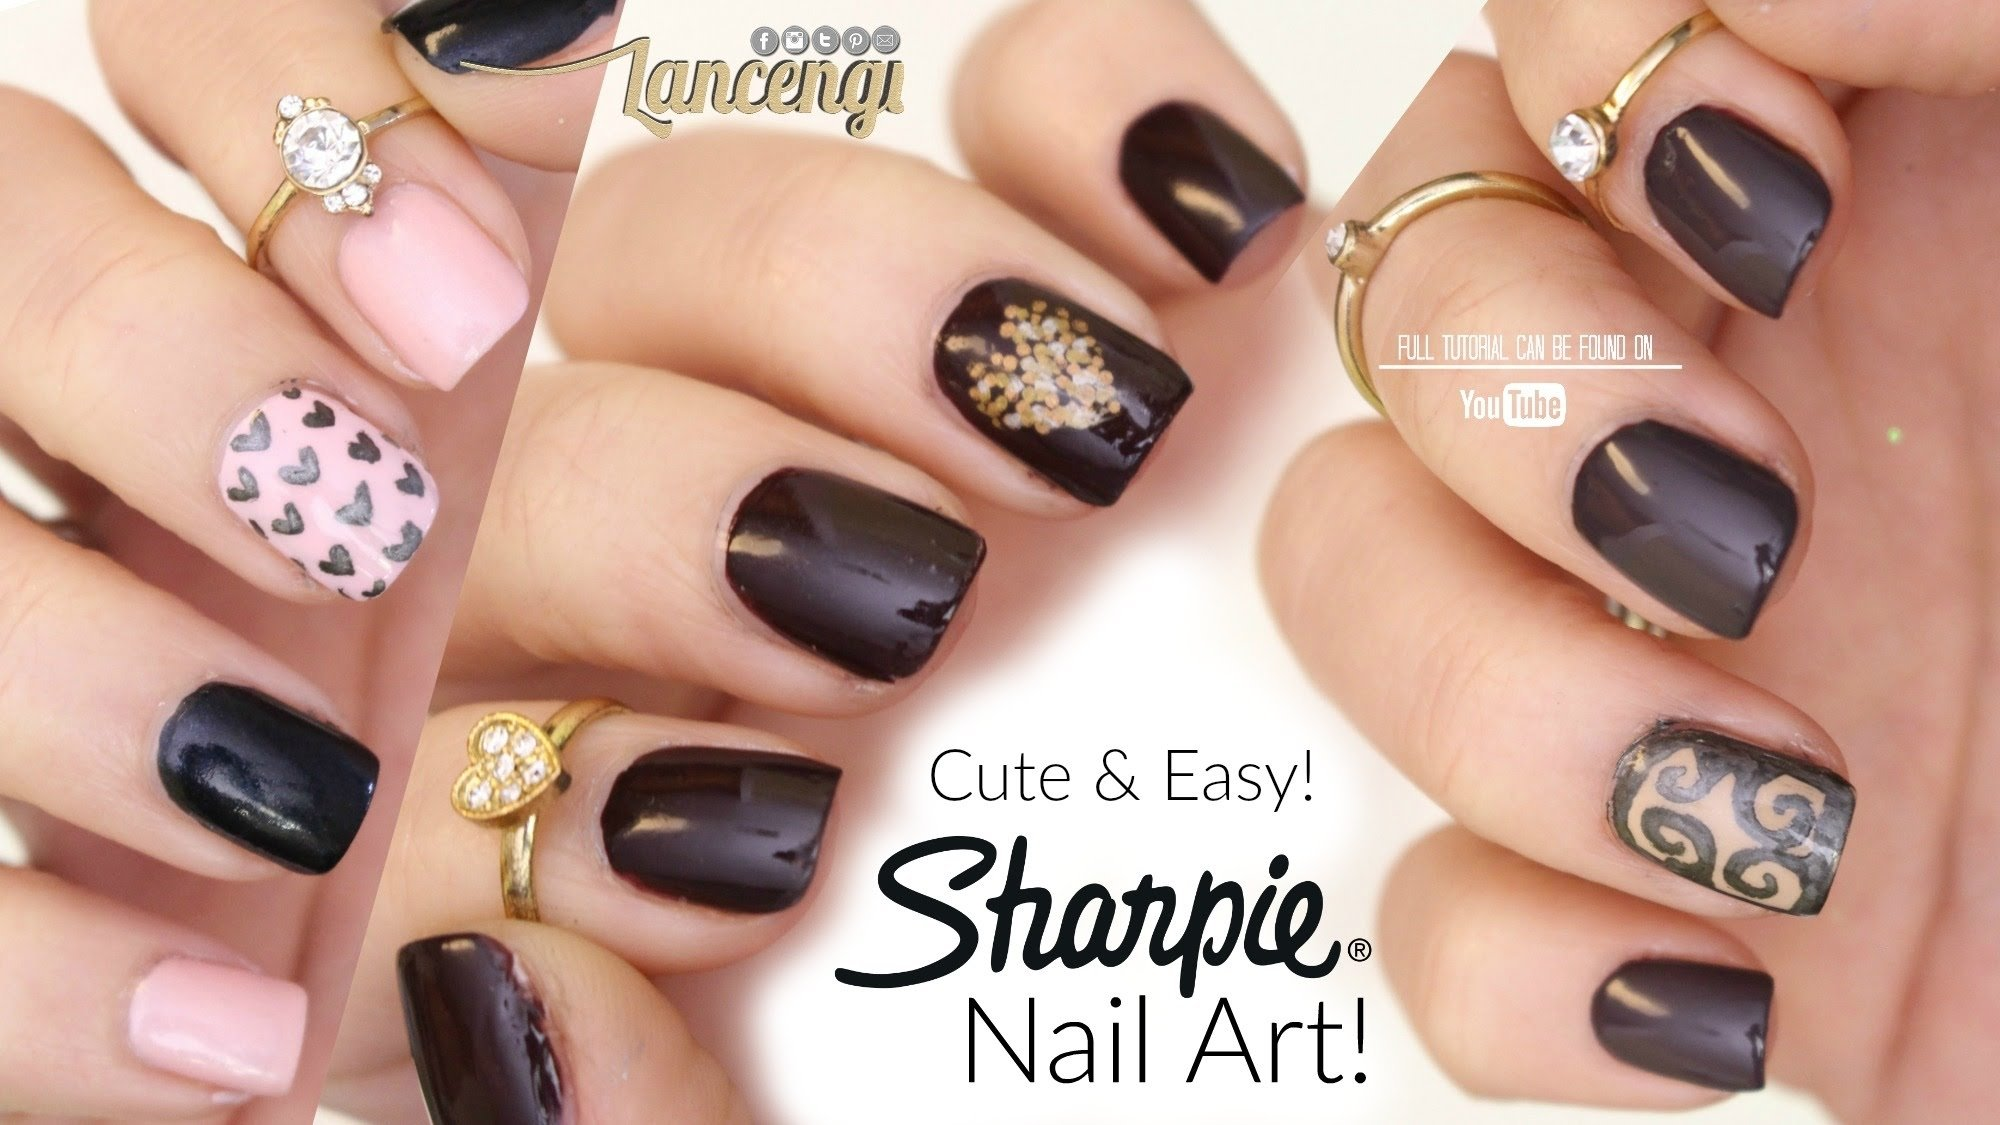 diy cute & easy nail art for beginners - sharpie nail designs #40